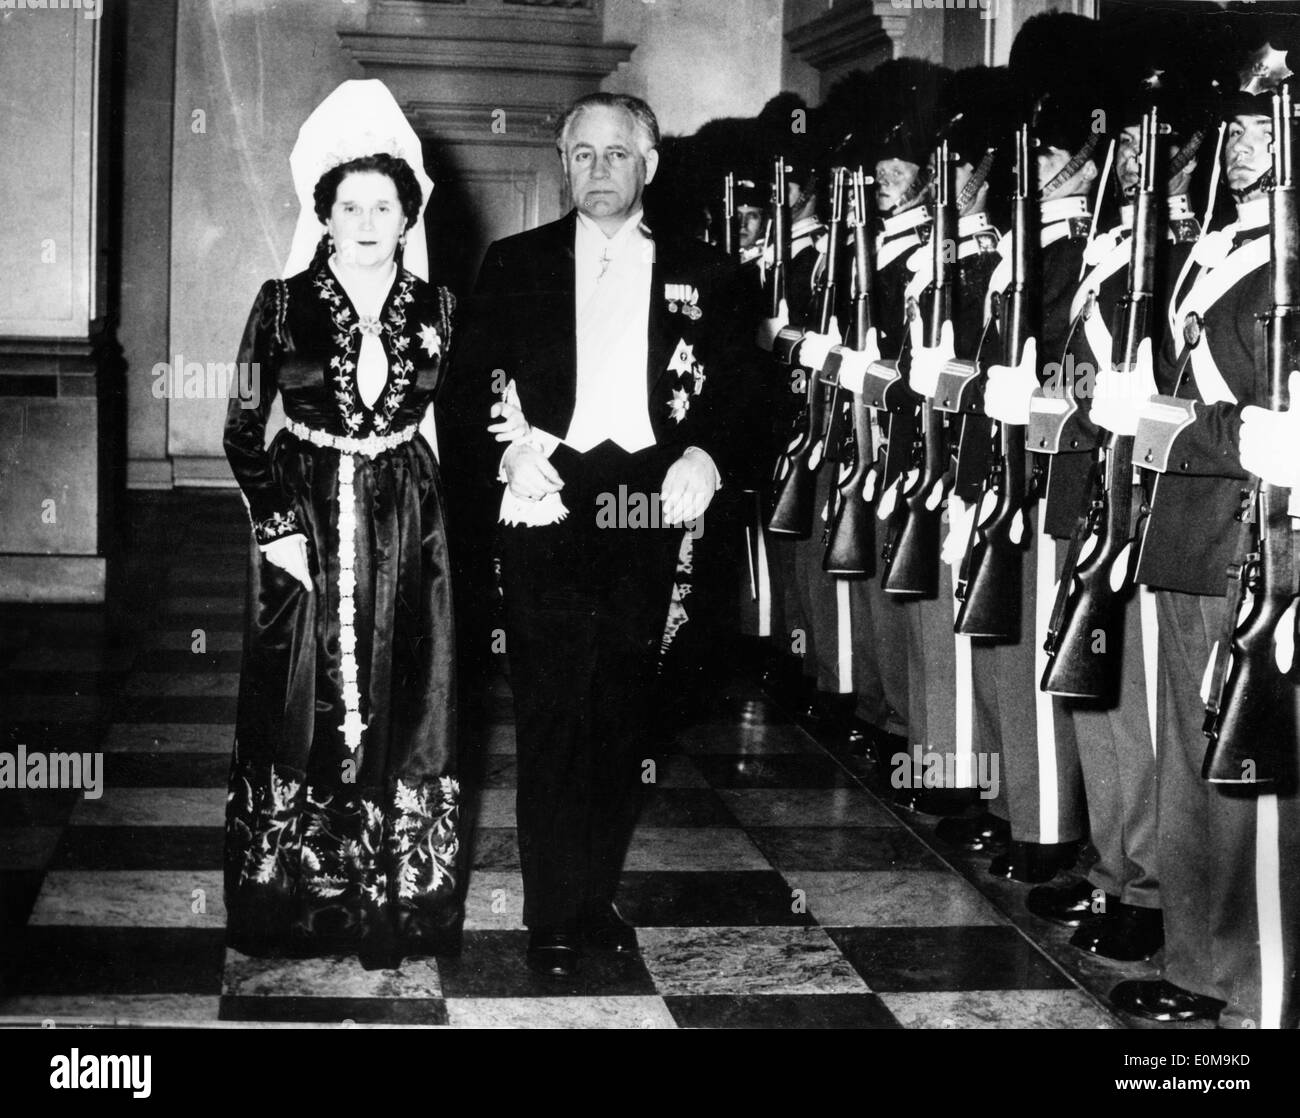 Apr 06, 1954; Copenhagen, Denmark; President ASGEIR ASGEIRSSON of Iceland, accompanied by his wife, arrived in Copenhagen yesterday on an official visit to Denmark. This is the Icelandic President's first visit to the Danish capital, which for 500 years was also the capital of Iceland. Last night they attended a dinner given by King Frederik in their honour, at the Knights' Hall, in the Christiansborg Palace, Copenhagen. The picture shows President Asgeir and his wife arriving at the Christiansborg Palace. - Stock Image